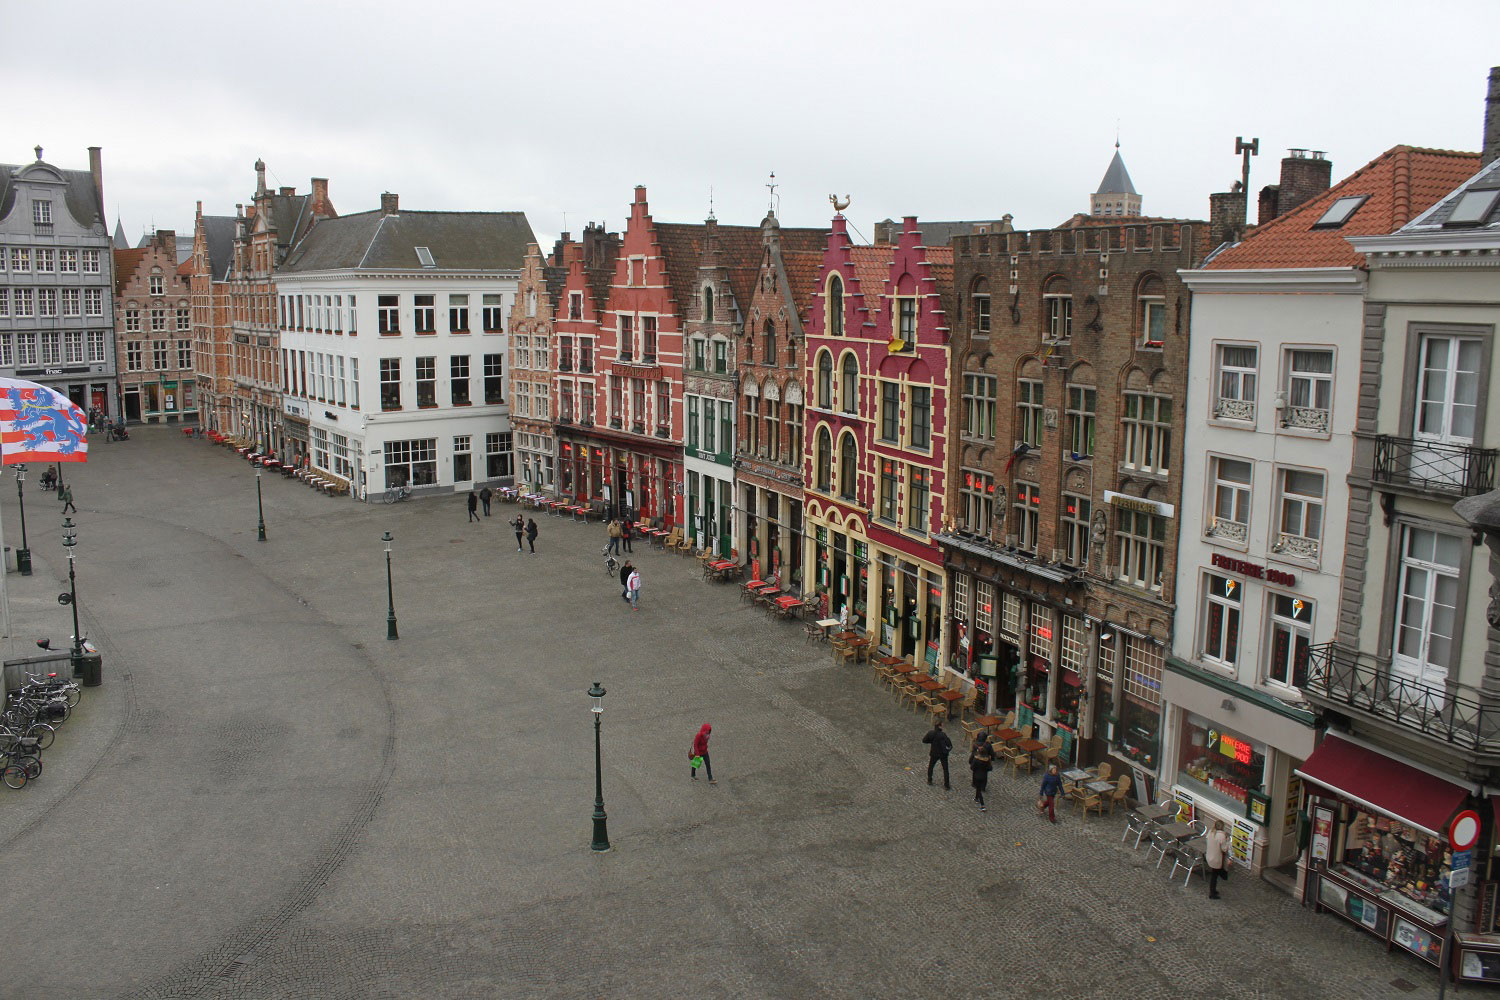 The main square in Bruges